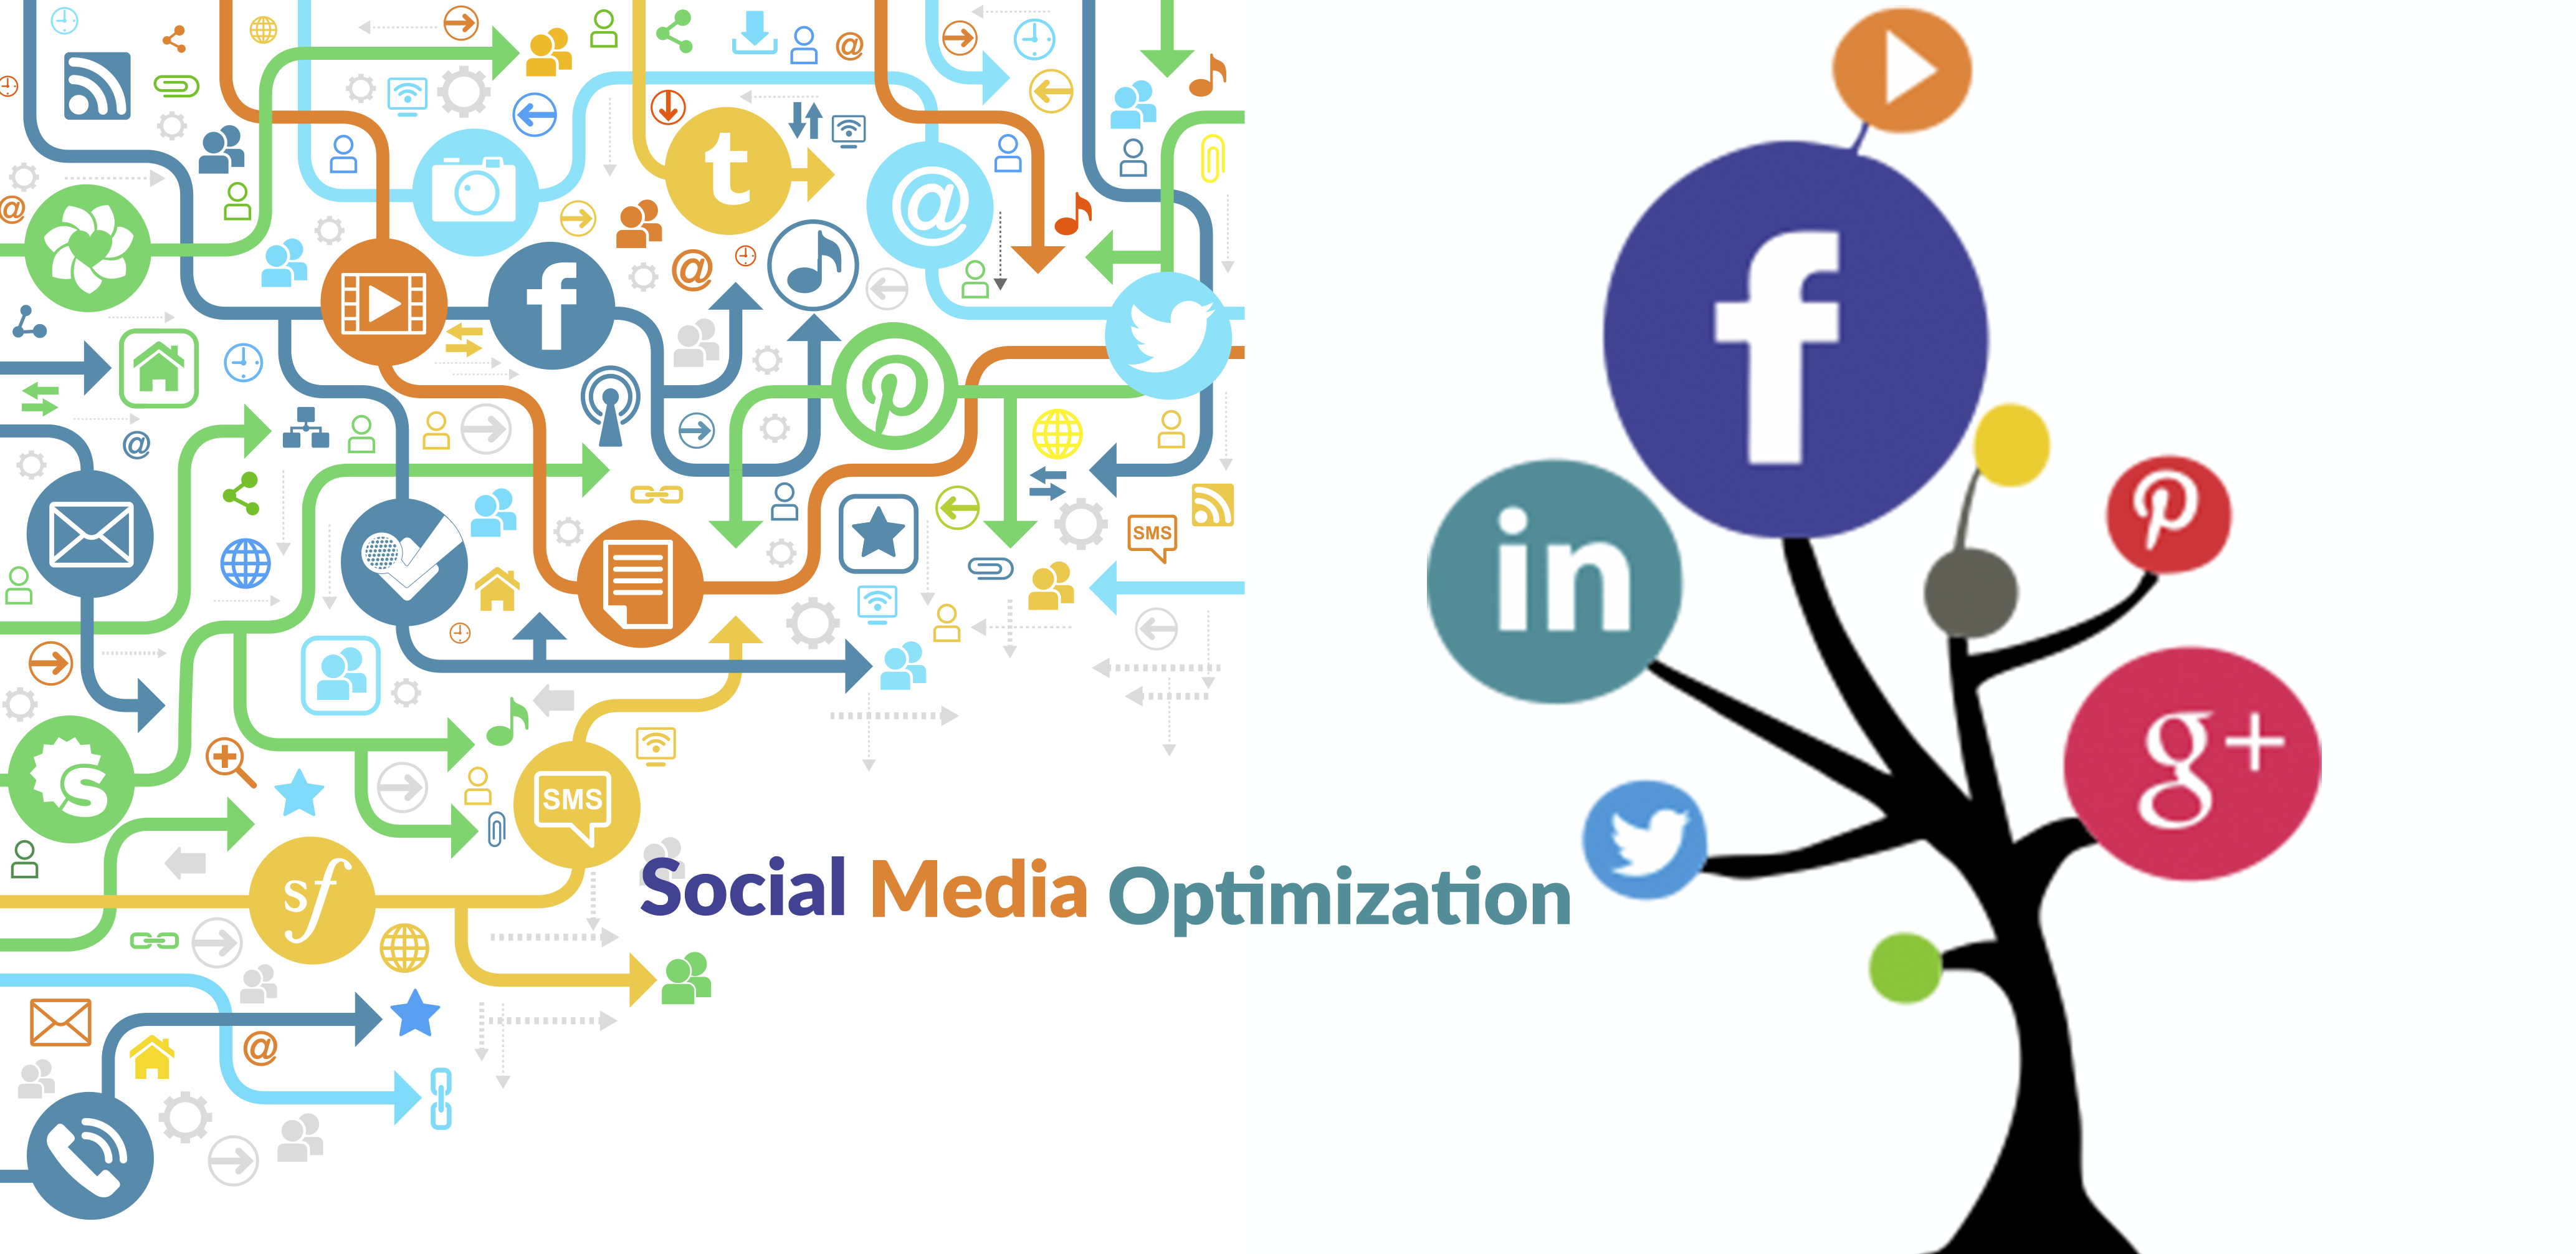 How Social Media Optimization Helps To Increase Brand Awareness